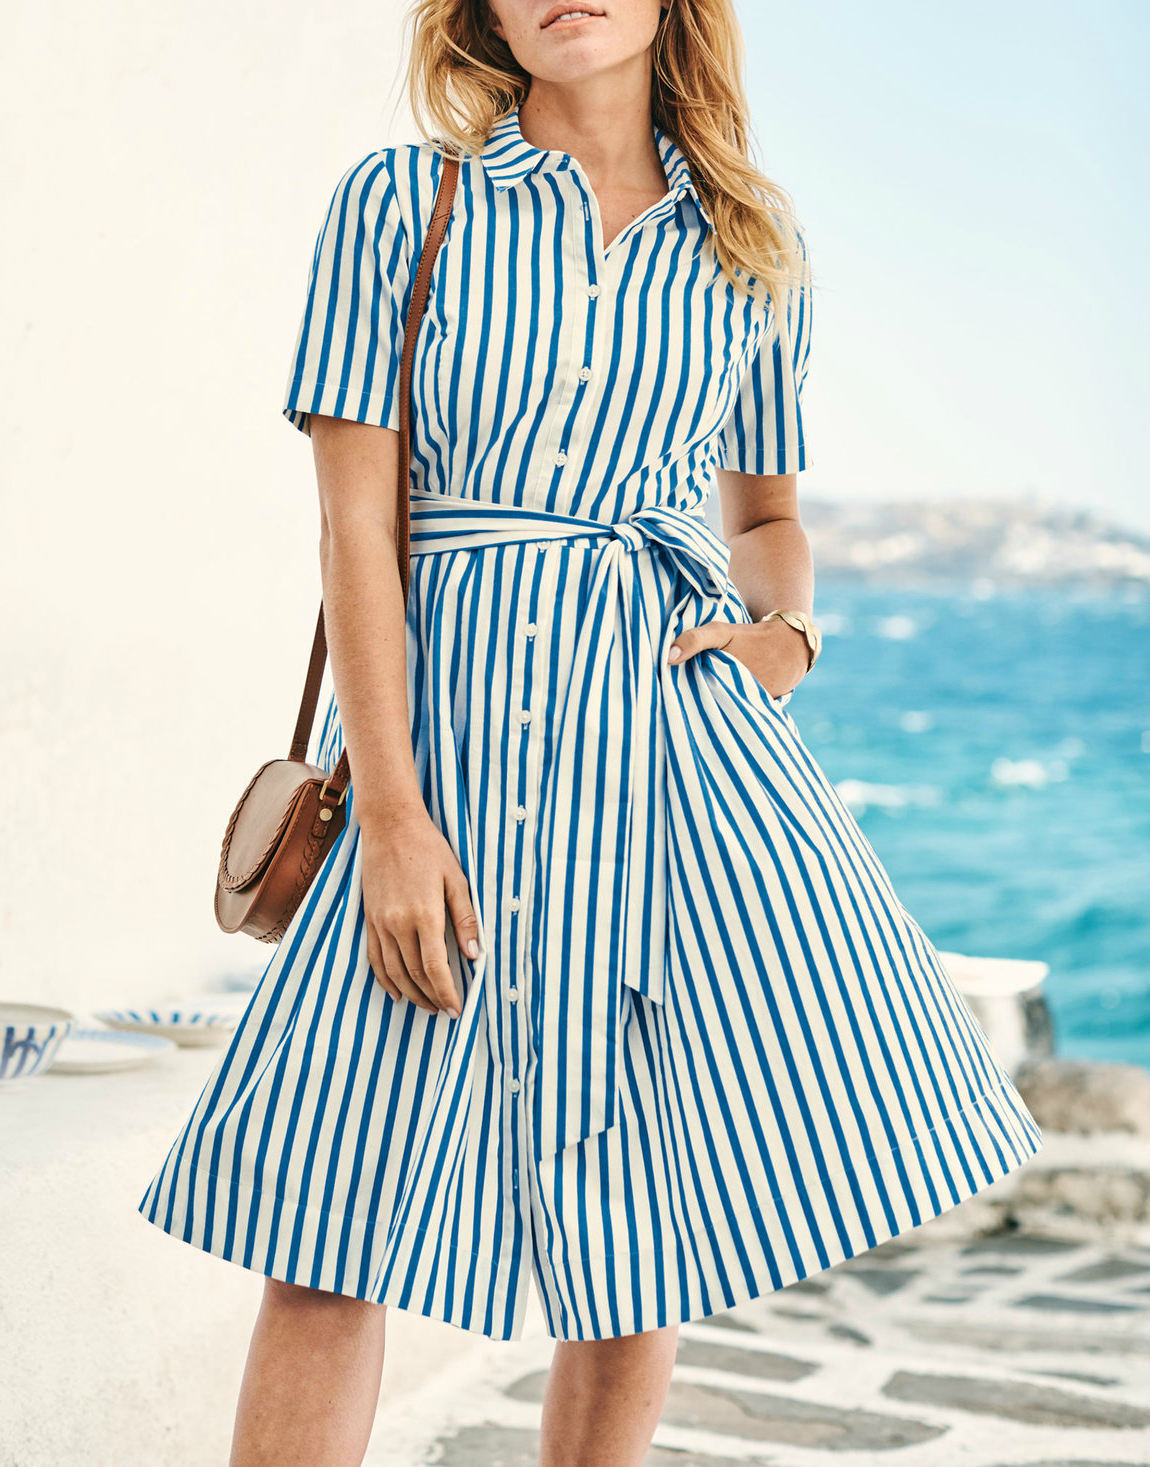 cute-summer-dresses-for-women